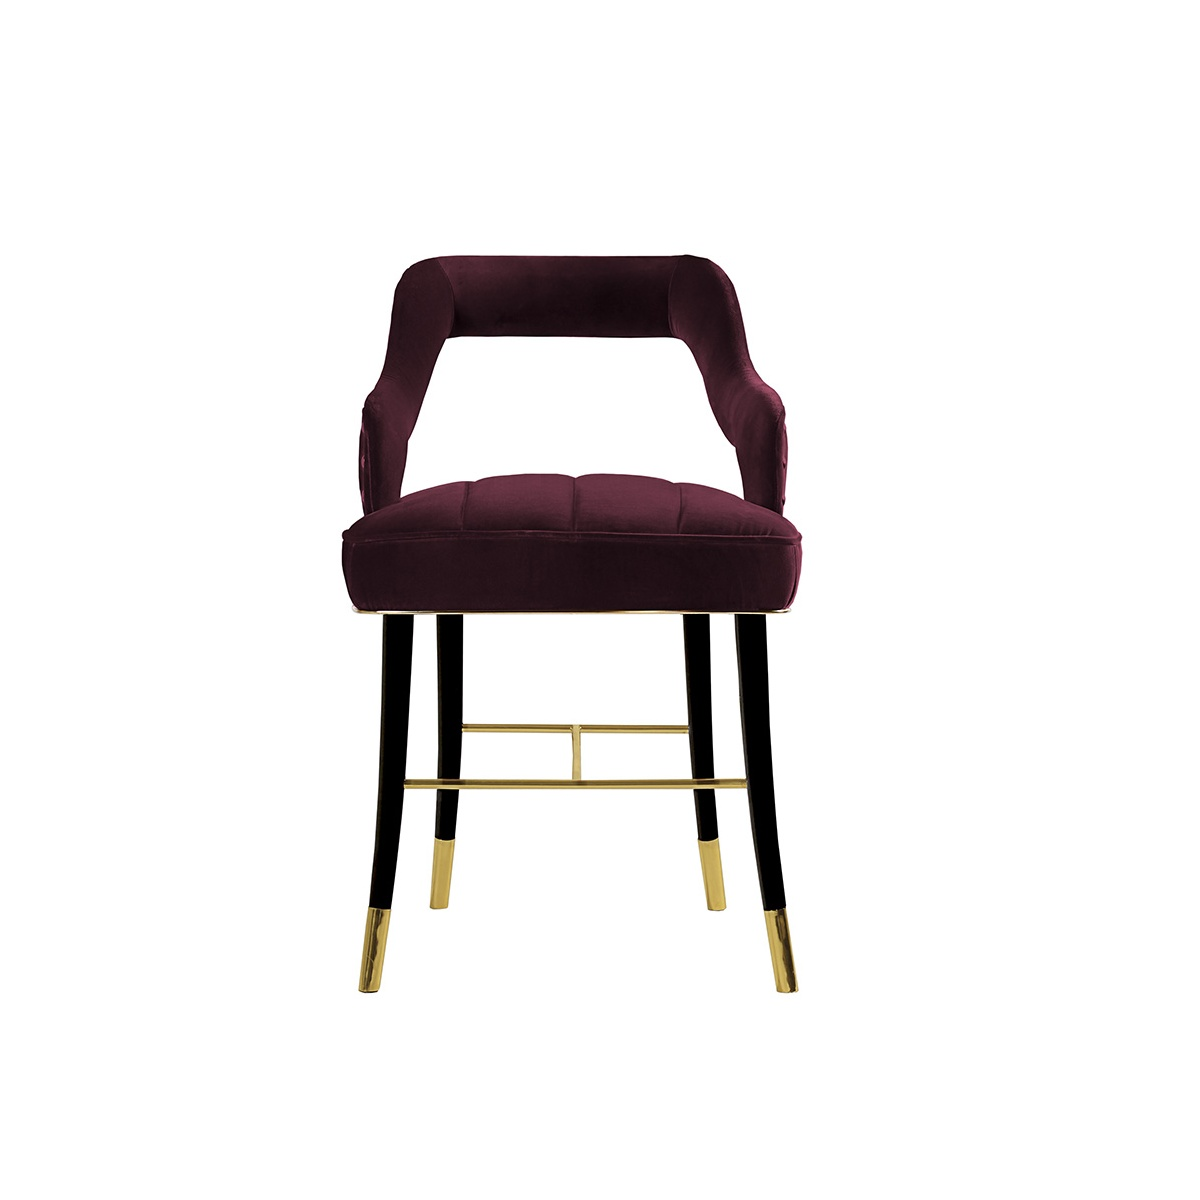 Kelly velvet dining chair designer chair swanky interiors for Dining room velvet chairs